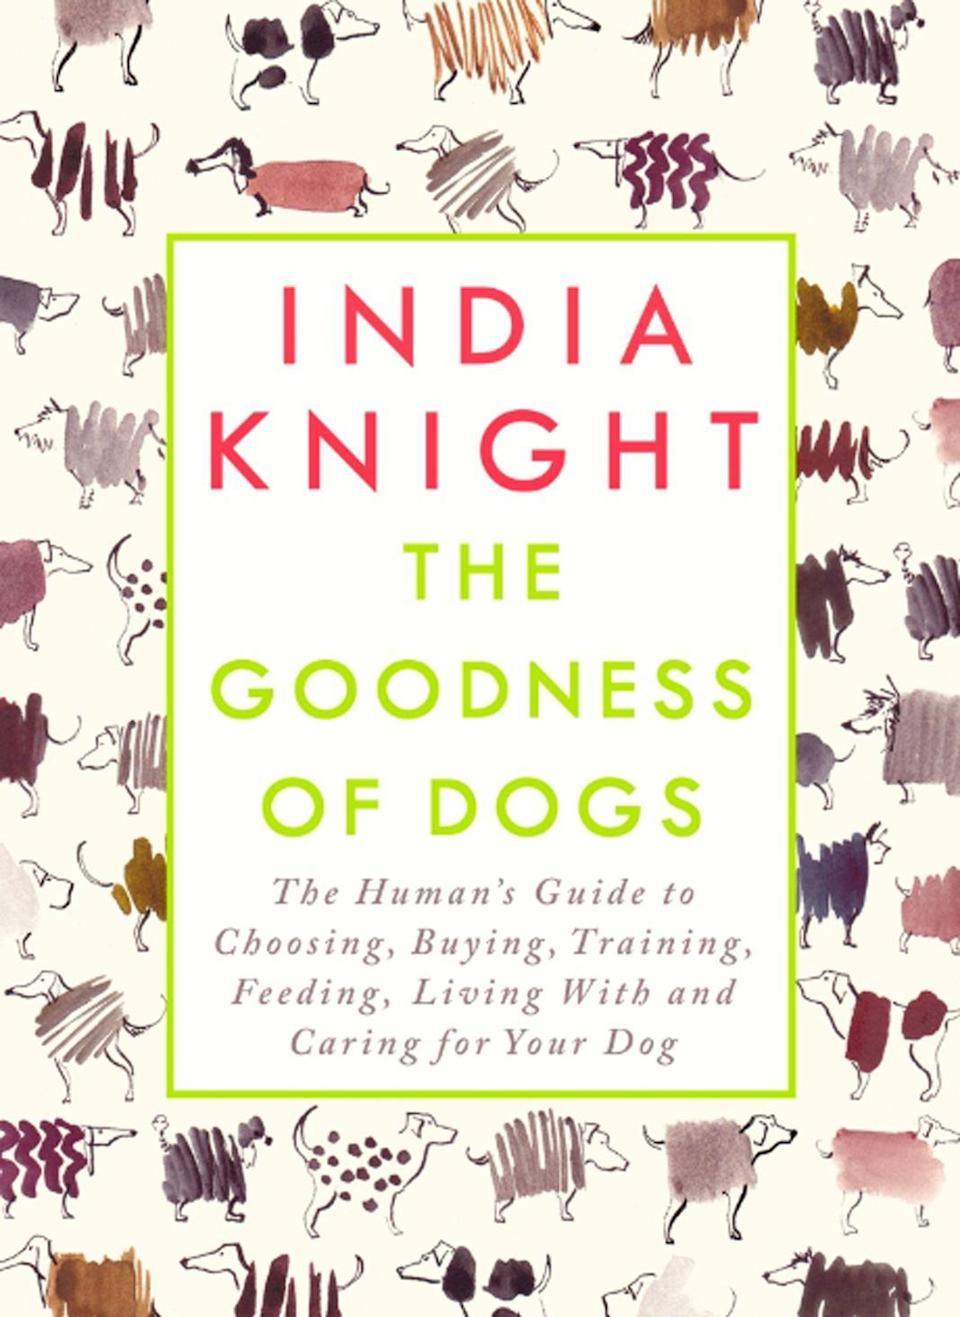 """<p><strong><em>The Goodness of Dogs</em></strong></p><p>By India Knight</p><p>The perfect gift for that friend or relative who you suspect prefers dogs to you. Written by the very funny <em>Sunday Times</em> columnist, India Knight, the book is dedicated to her dog Brodie, and written on the opening page is: """"For Brodie, for when he can read"""" – which tells you all you need to know about the serious dog love in this book.</p><p>It's a practical, heartwarming, hilarious book about dogs; whether you should get one, how you will love it, what you will have to sacrifice for it, and the unspeakable moment where you realise you chose the wrong puppy...</p>"""